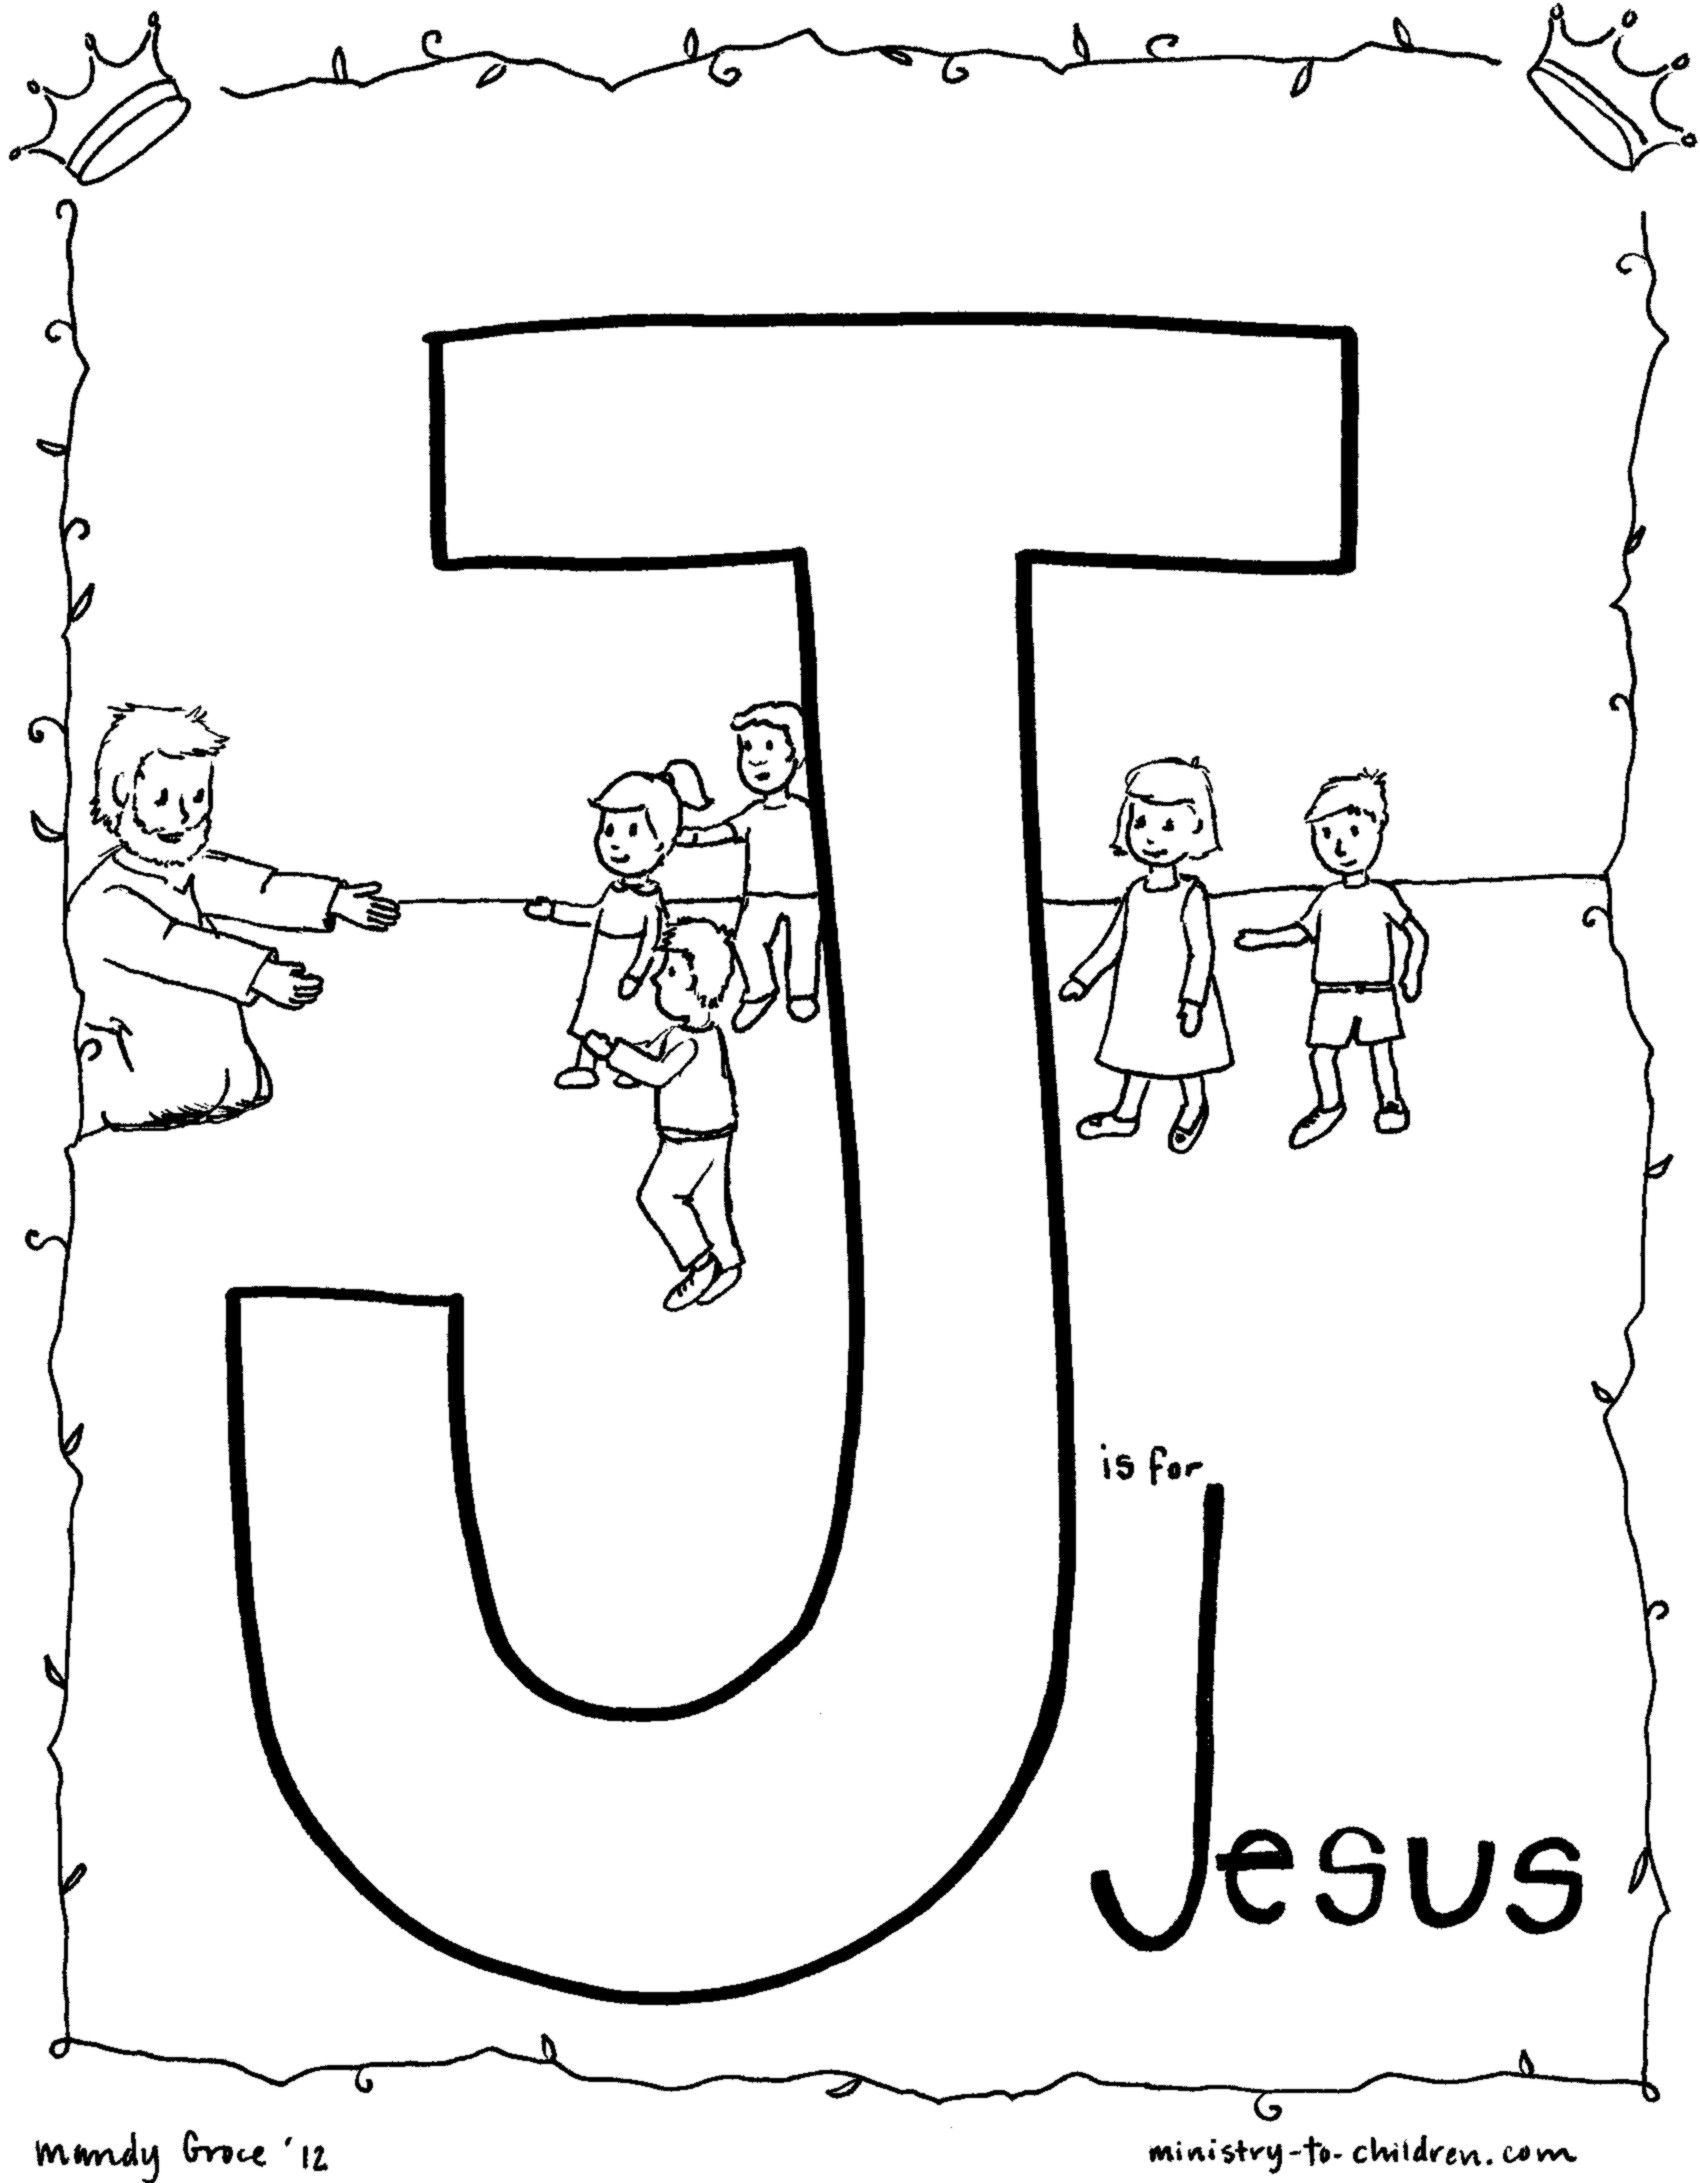 Bible Alphabet coloring Pages http//ministrytochildren